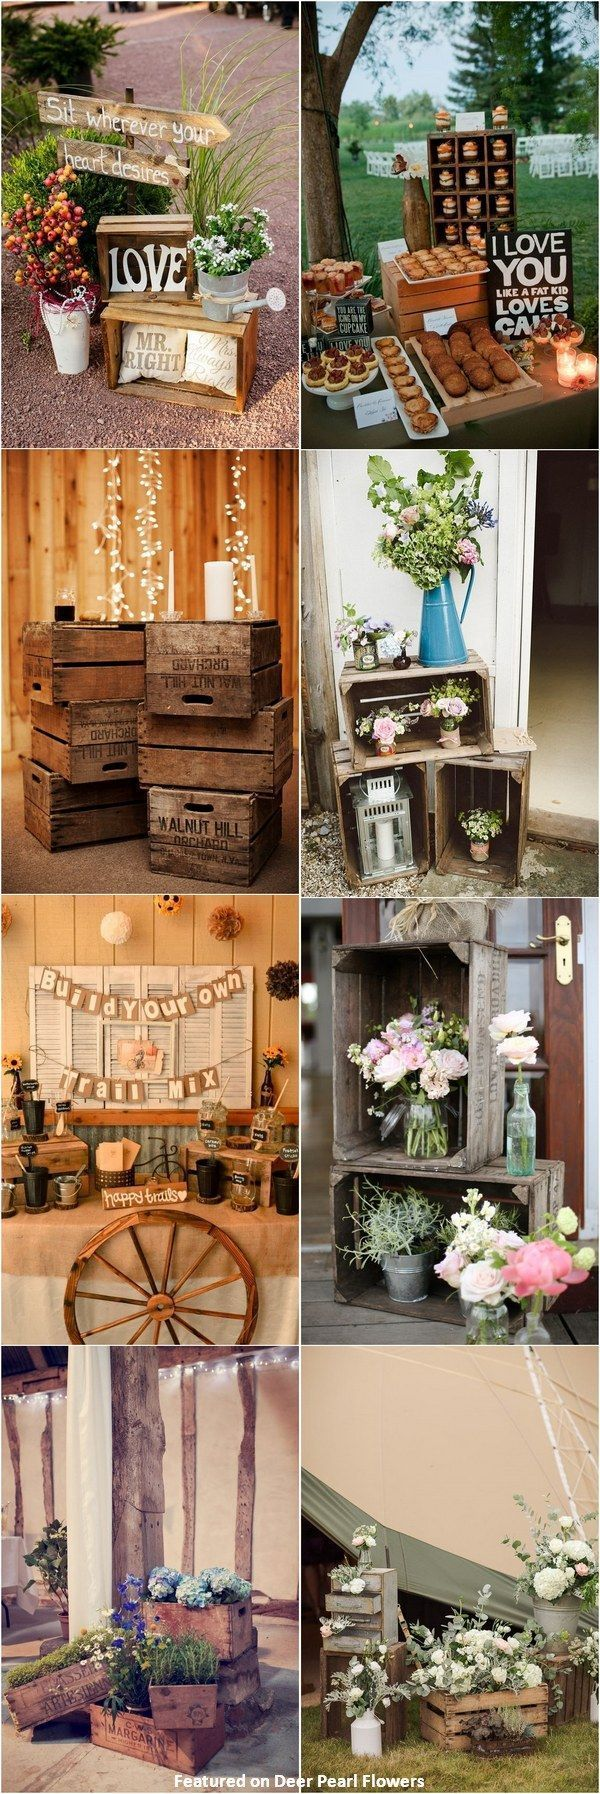 Wedding decorations country   Rustic Country Wooden Crates Wedding Ideas  Svatba  Pinterest